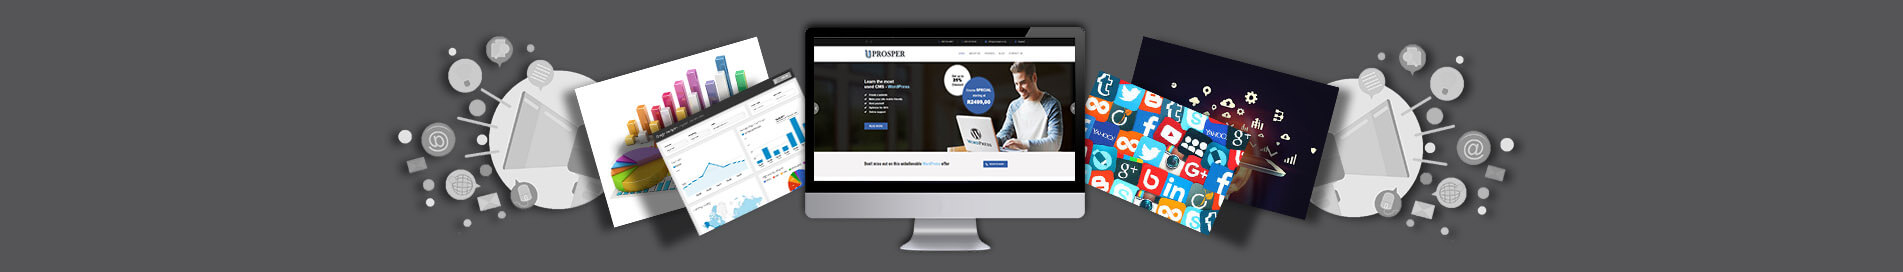 uprosper digital marketing course header